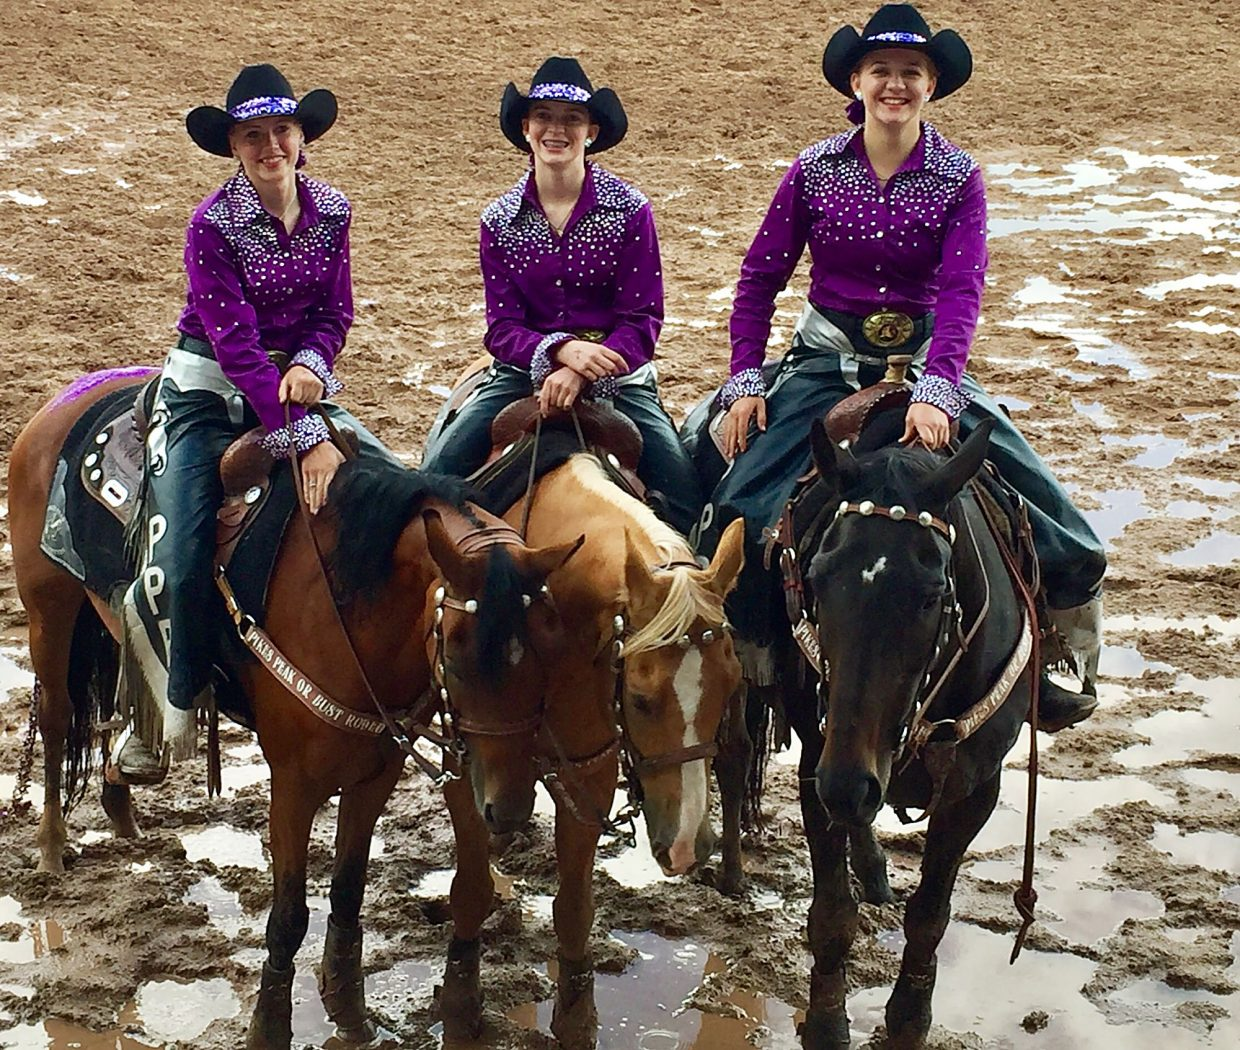 At the 2017 Pikes Peak or Bust Rodeo's Saturday night performance, three Rangerettes pose during the Grand Entry. A little rain didn't dampen the spirits of (left to right) Ashleigh Barnes riding Luna, Sydney Nelson on Rango, and Natalie Smith atop Tasia.